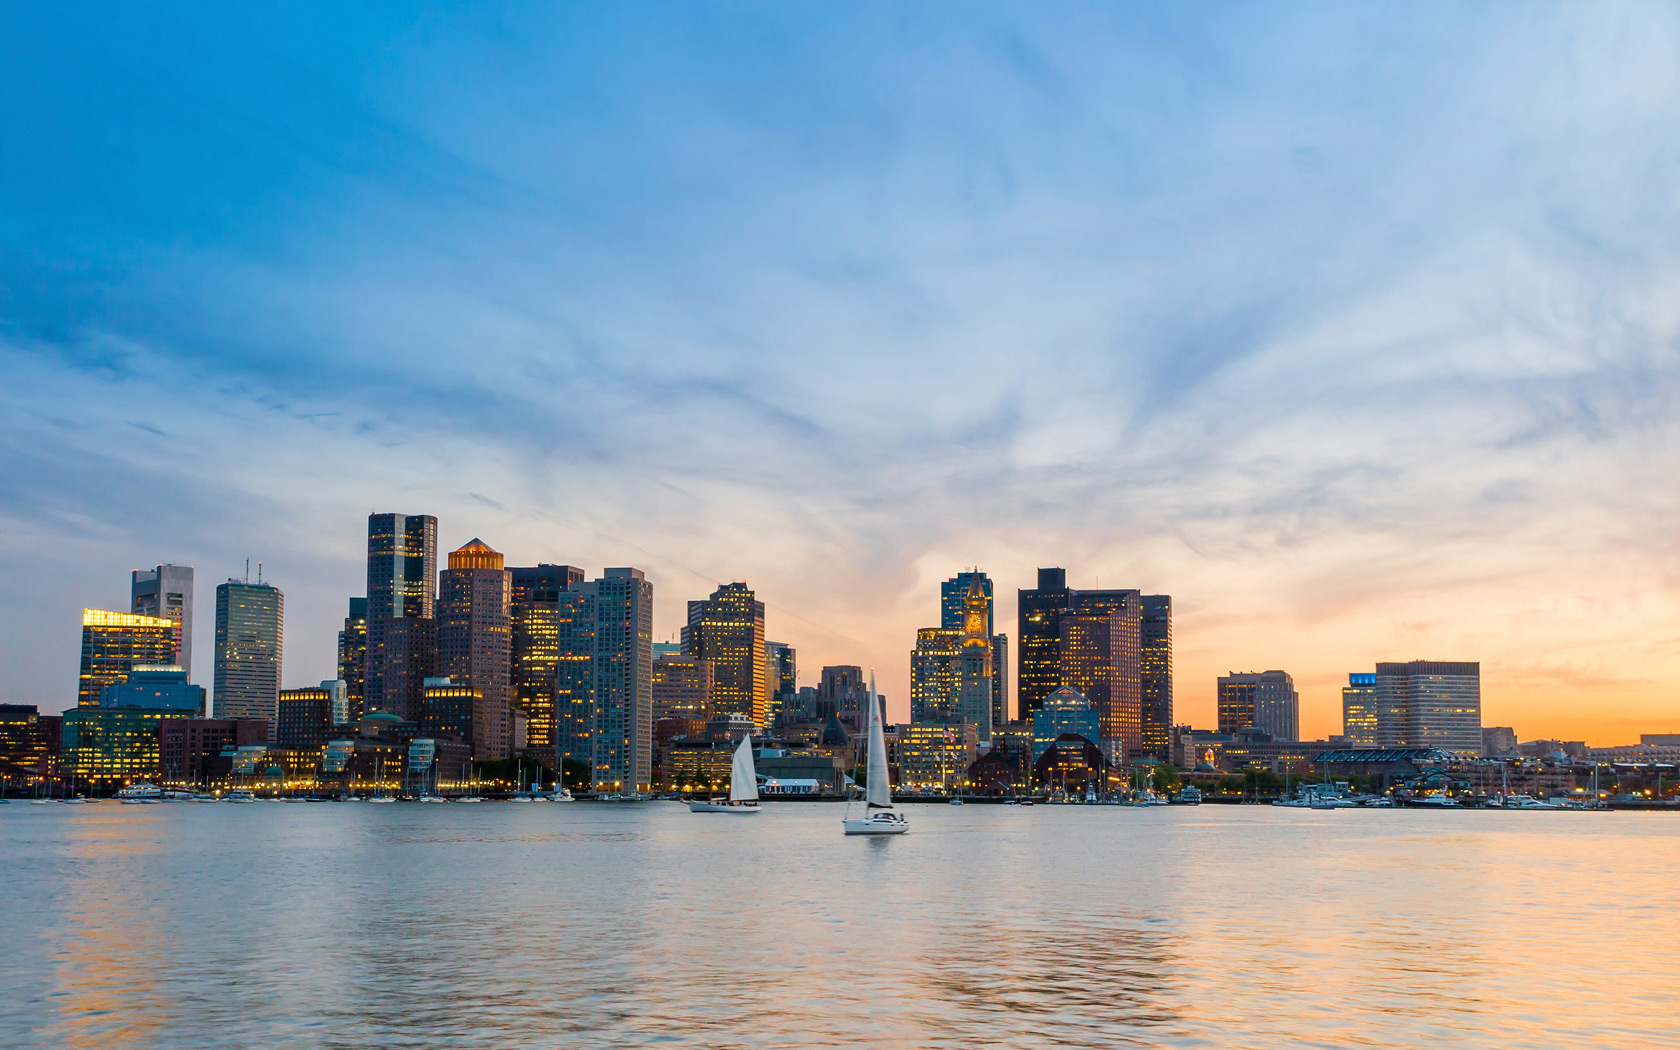 boston skyline from the water at sunset